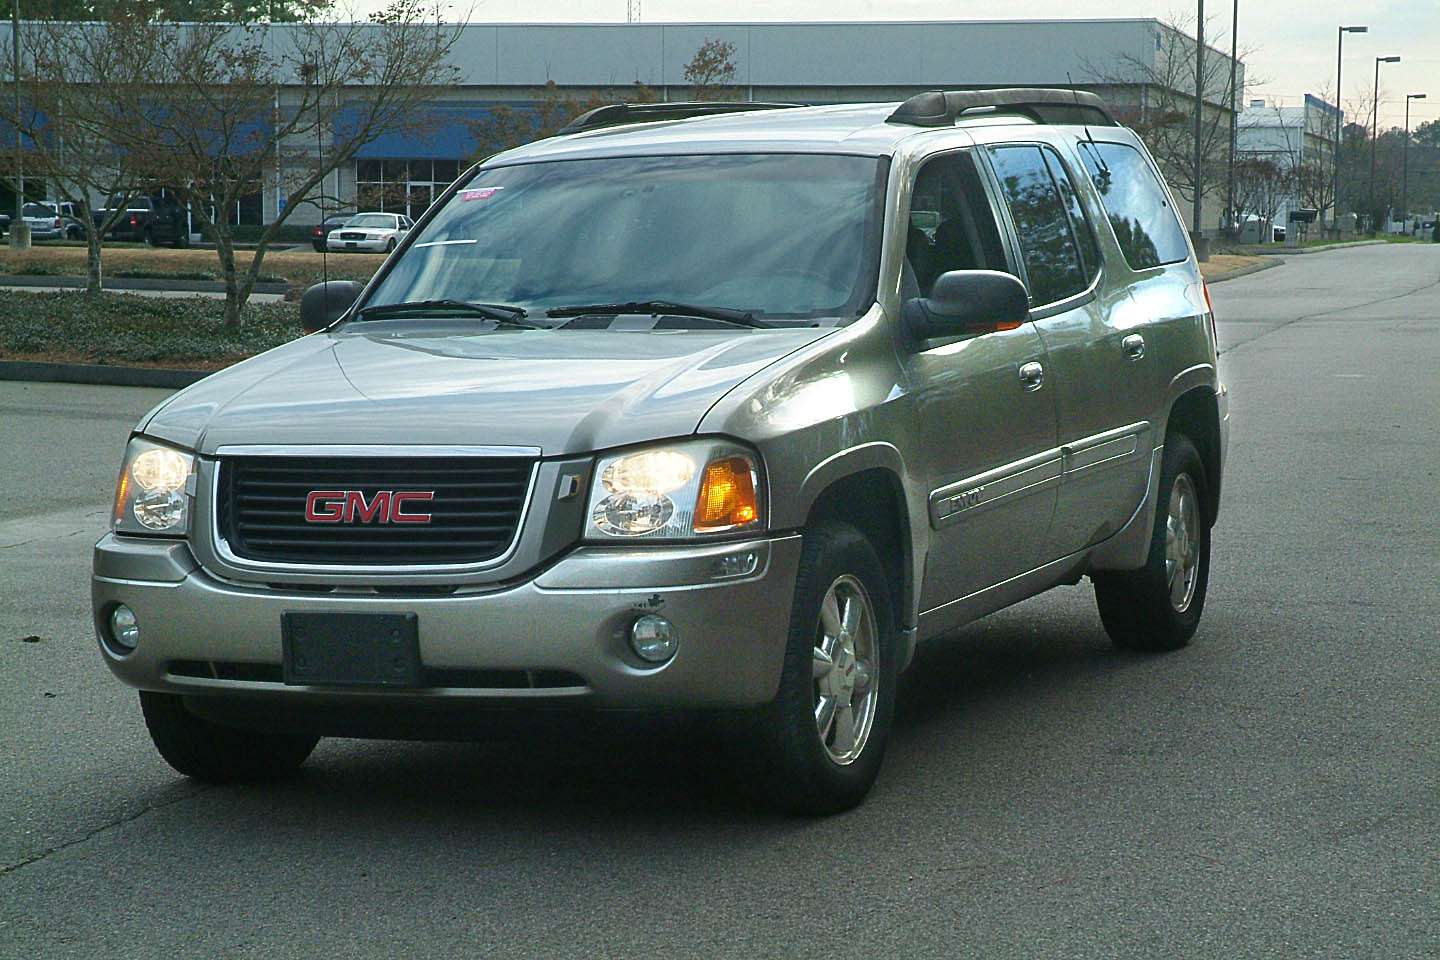 Gmc Envoy Pictures to Pin on Pinterest  PinsDaddy